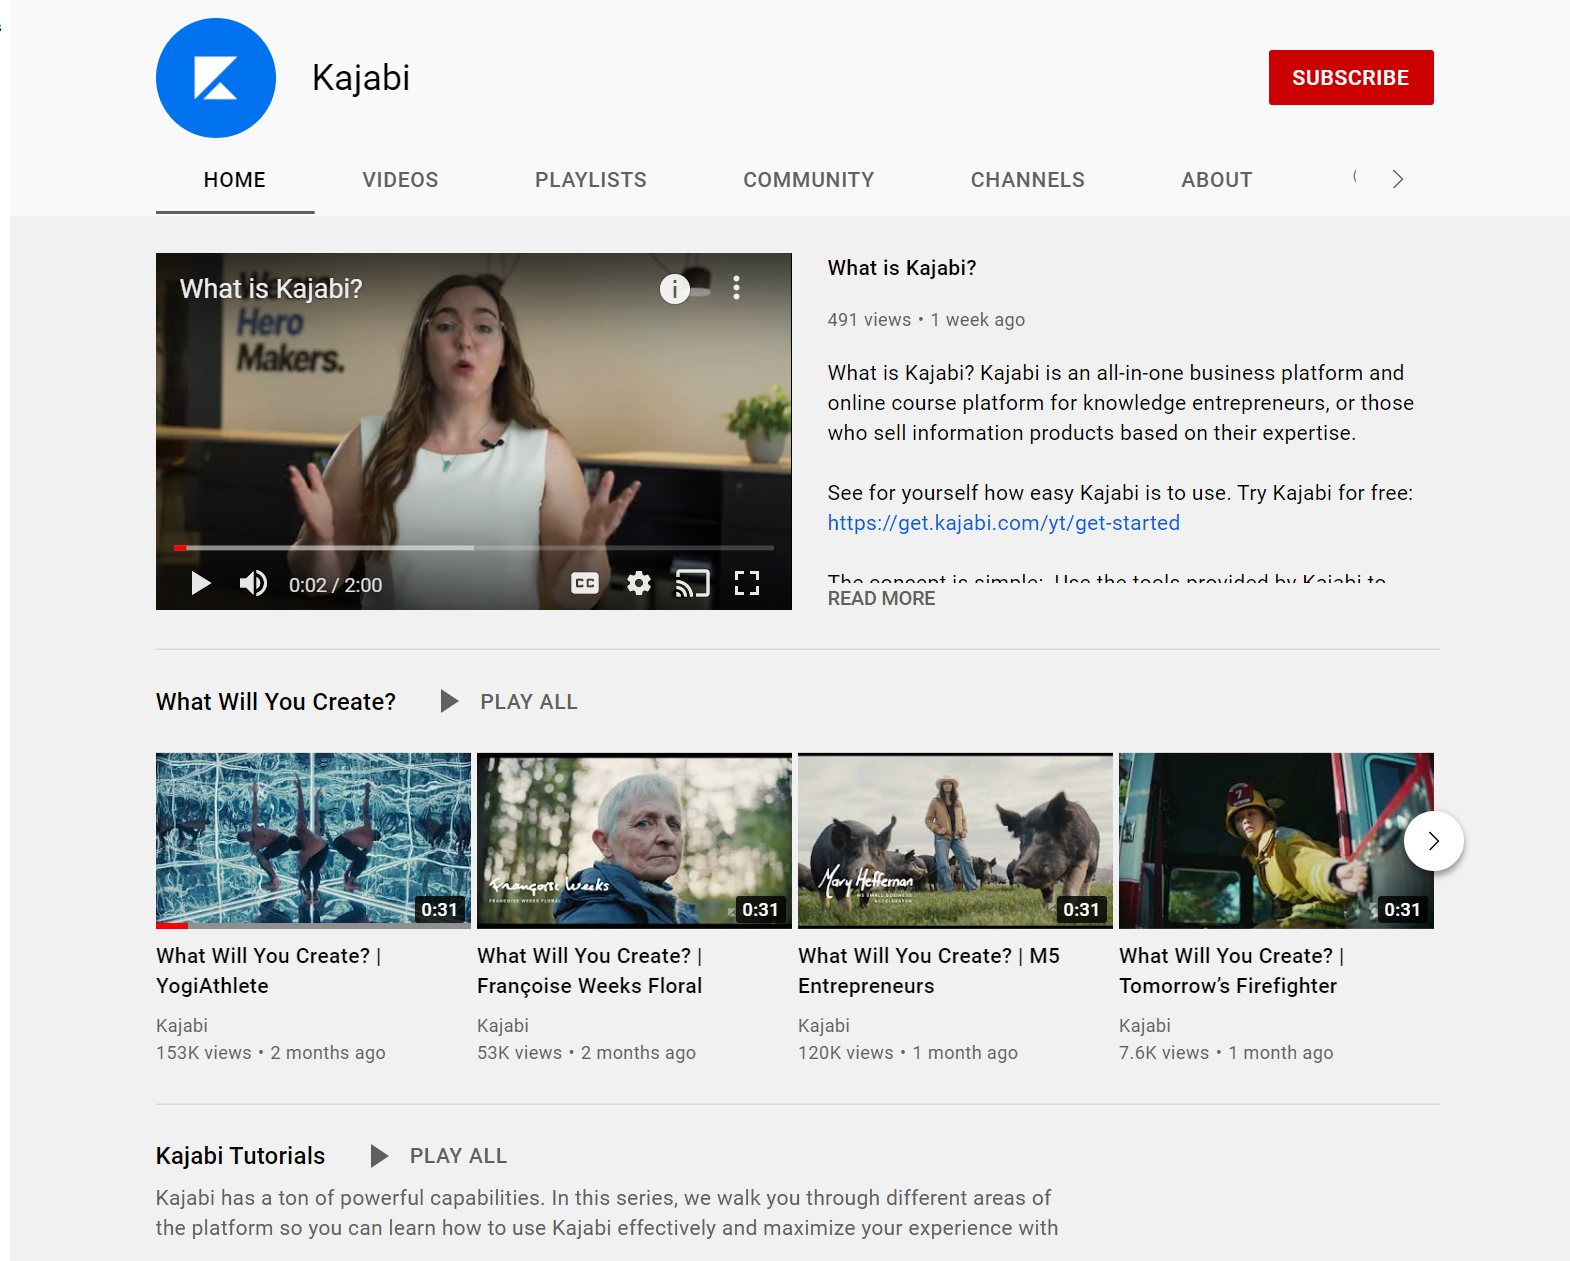 Kajabi YouTube channel showing a What Is Kajabi paused video and the What Will You Create playlist